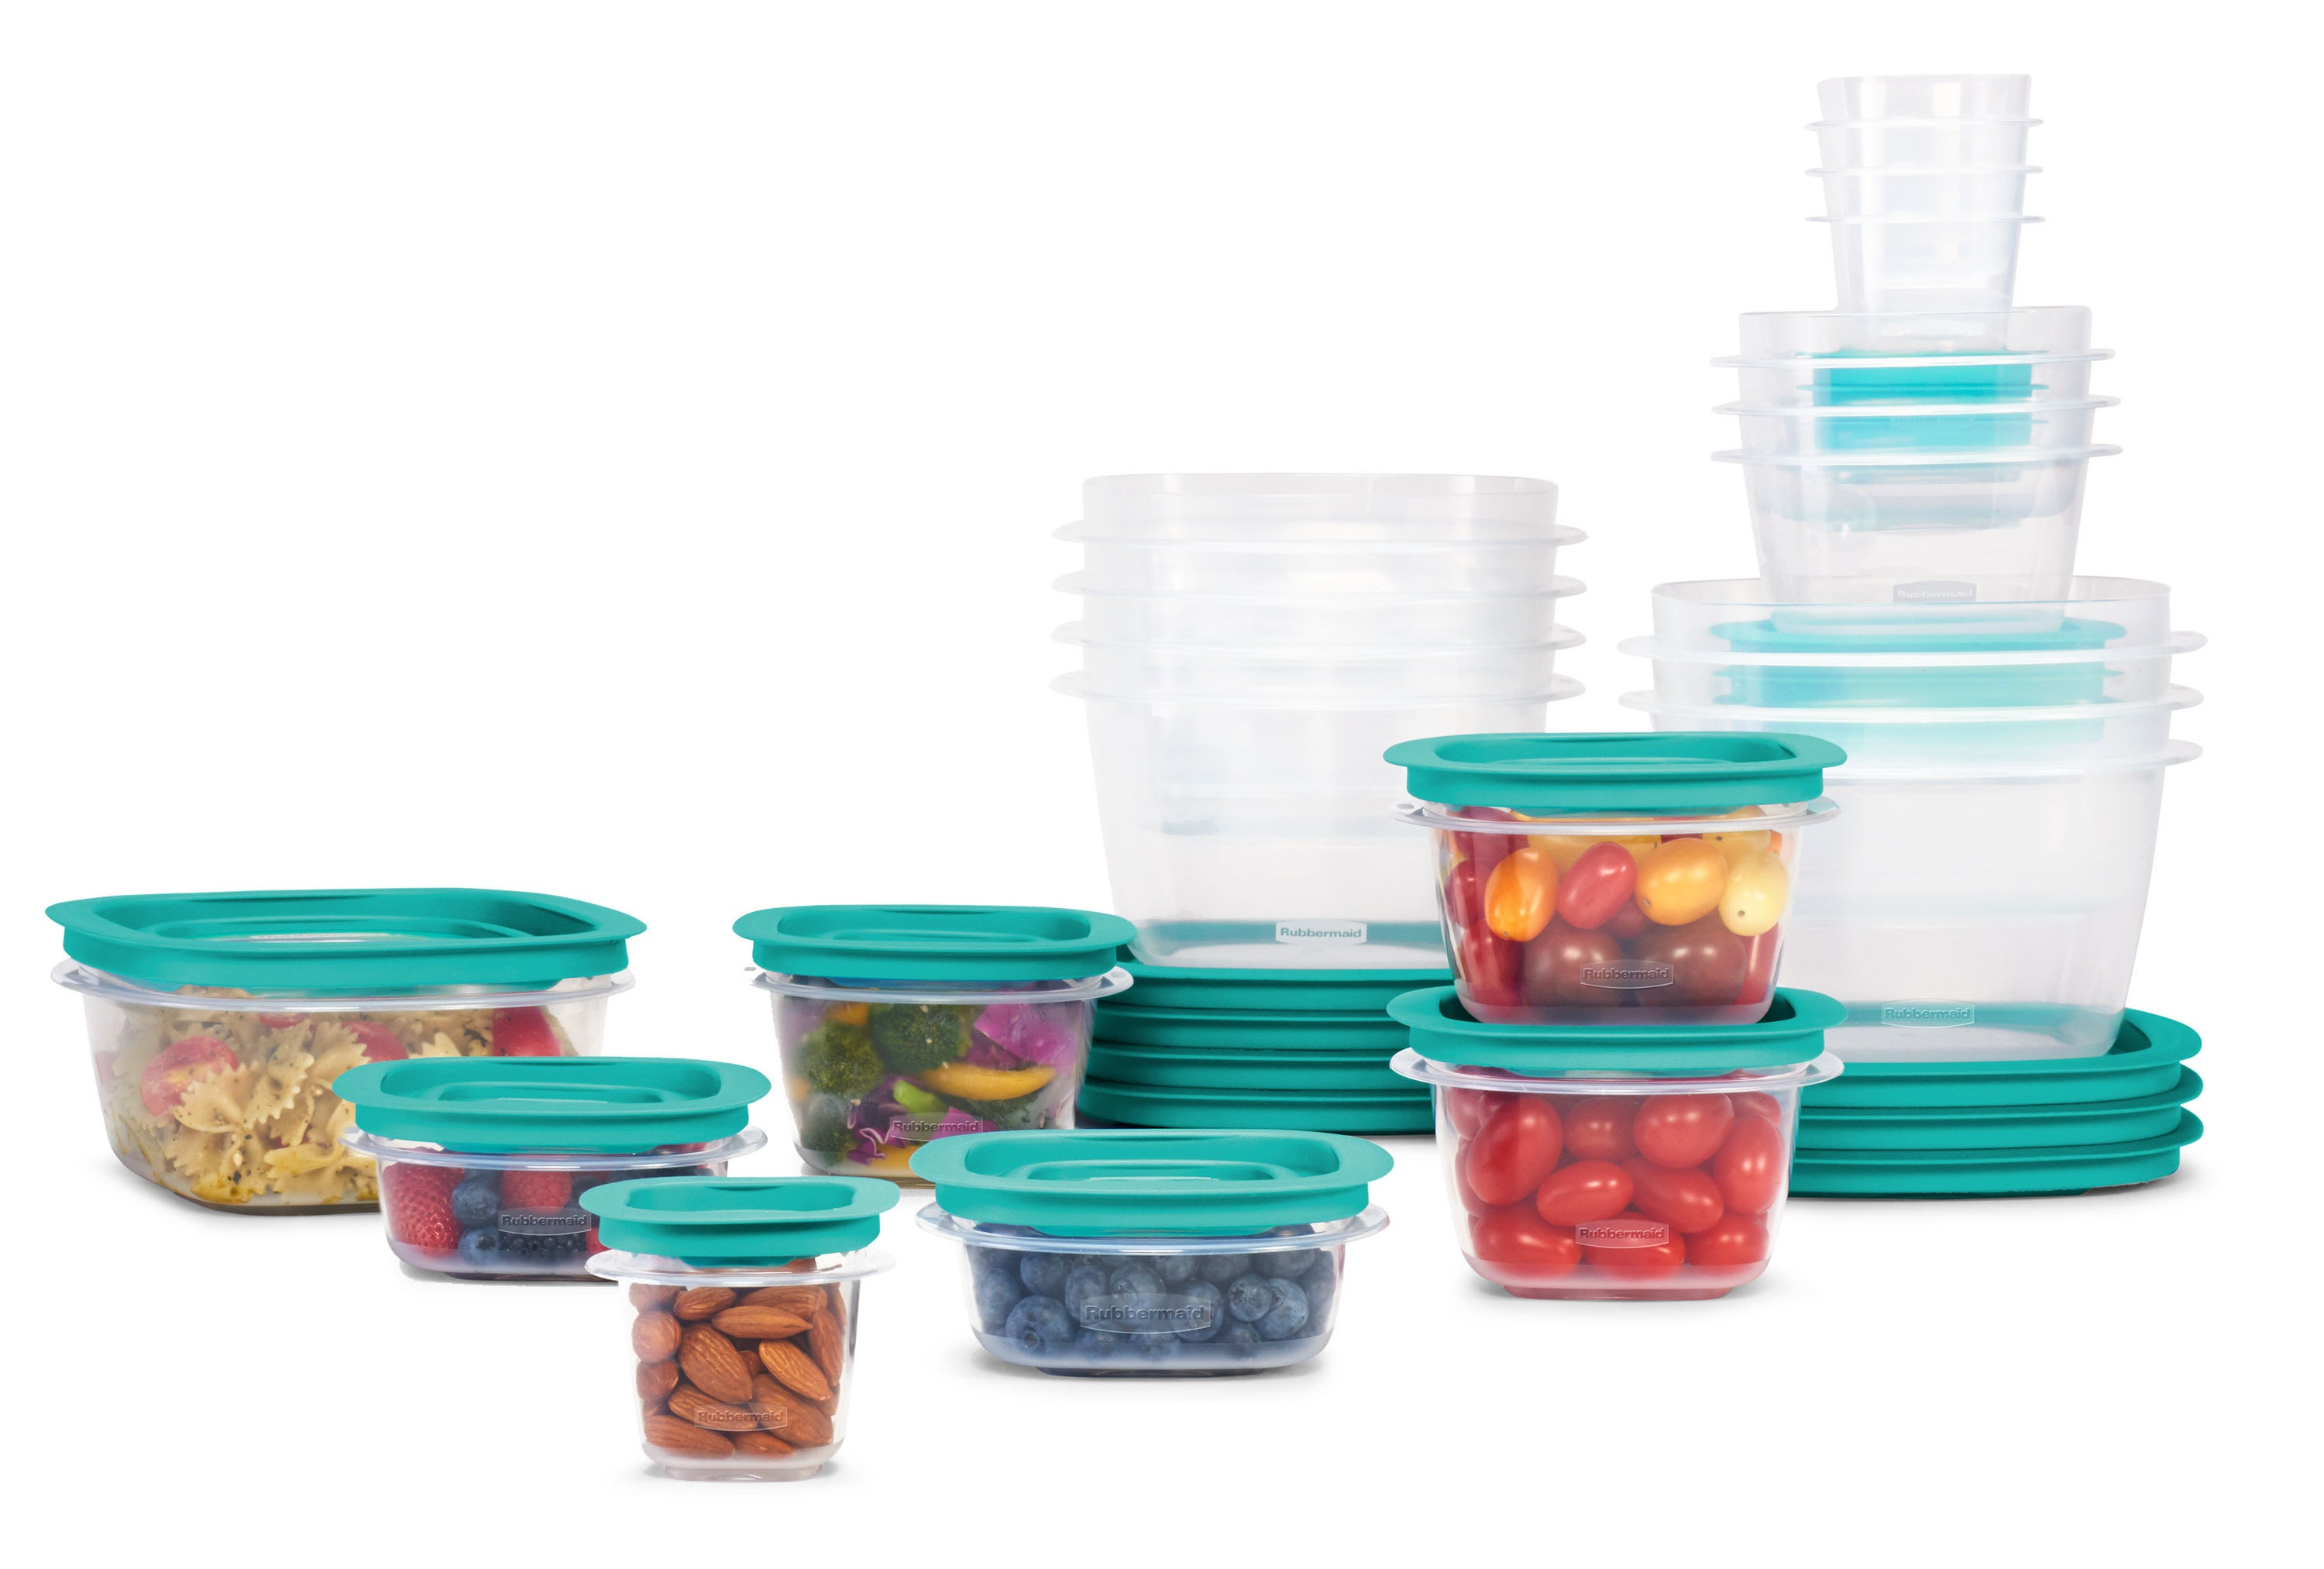 42 pieces of a food storage container set